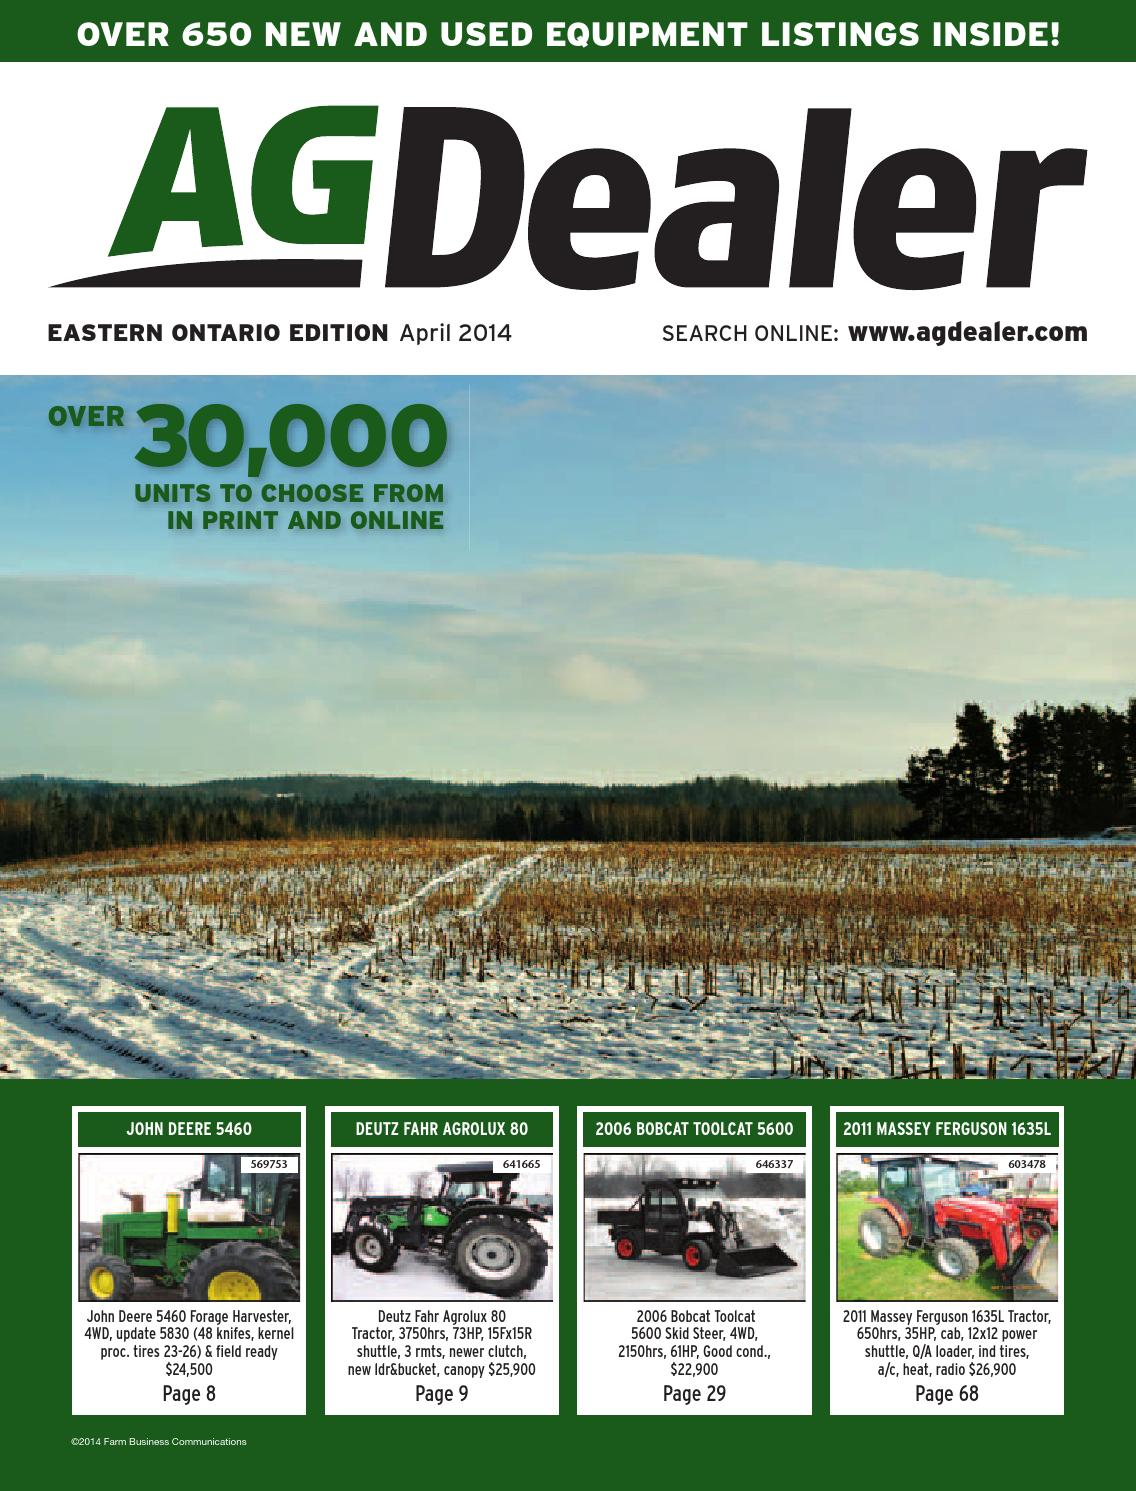 AGDealer Eastern Ontario Edition, April 2014 by Farm Business ...